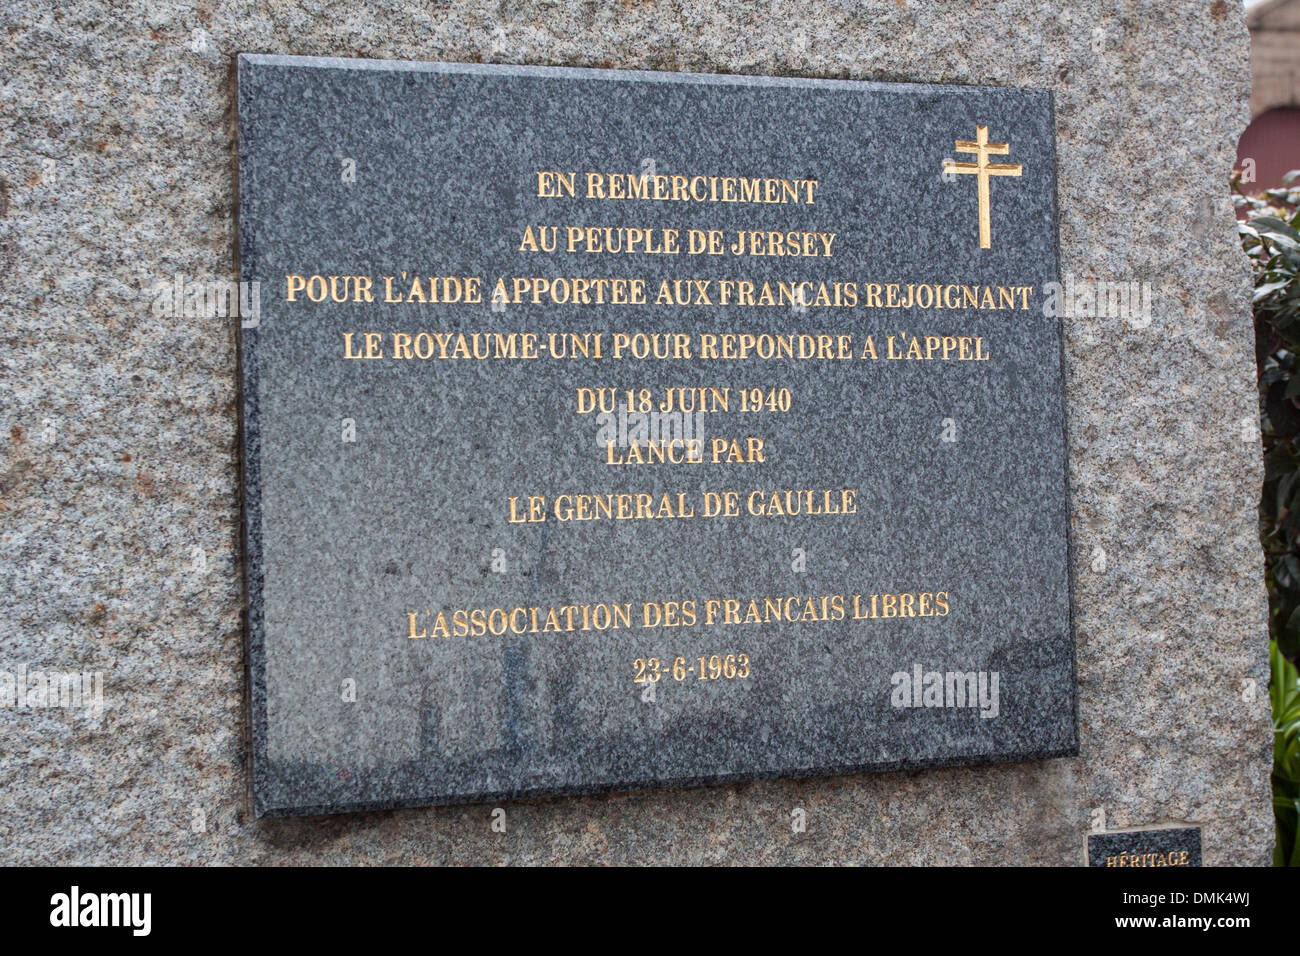 COMMEMORATIVE PLAQUE OF THE ASSOCIATION OF THE FREE FRENCH ON THE QUAYS OF THE PORT OF SAINT-HELIER, OBLIGATION OF REMEMBRANCE, SECOND WORLD WAR, SAINT-HELIER, JERSEY, CHANNEL ISLANDS - Stock Image